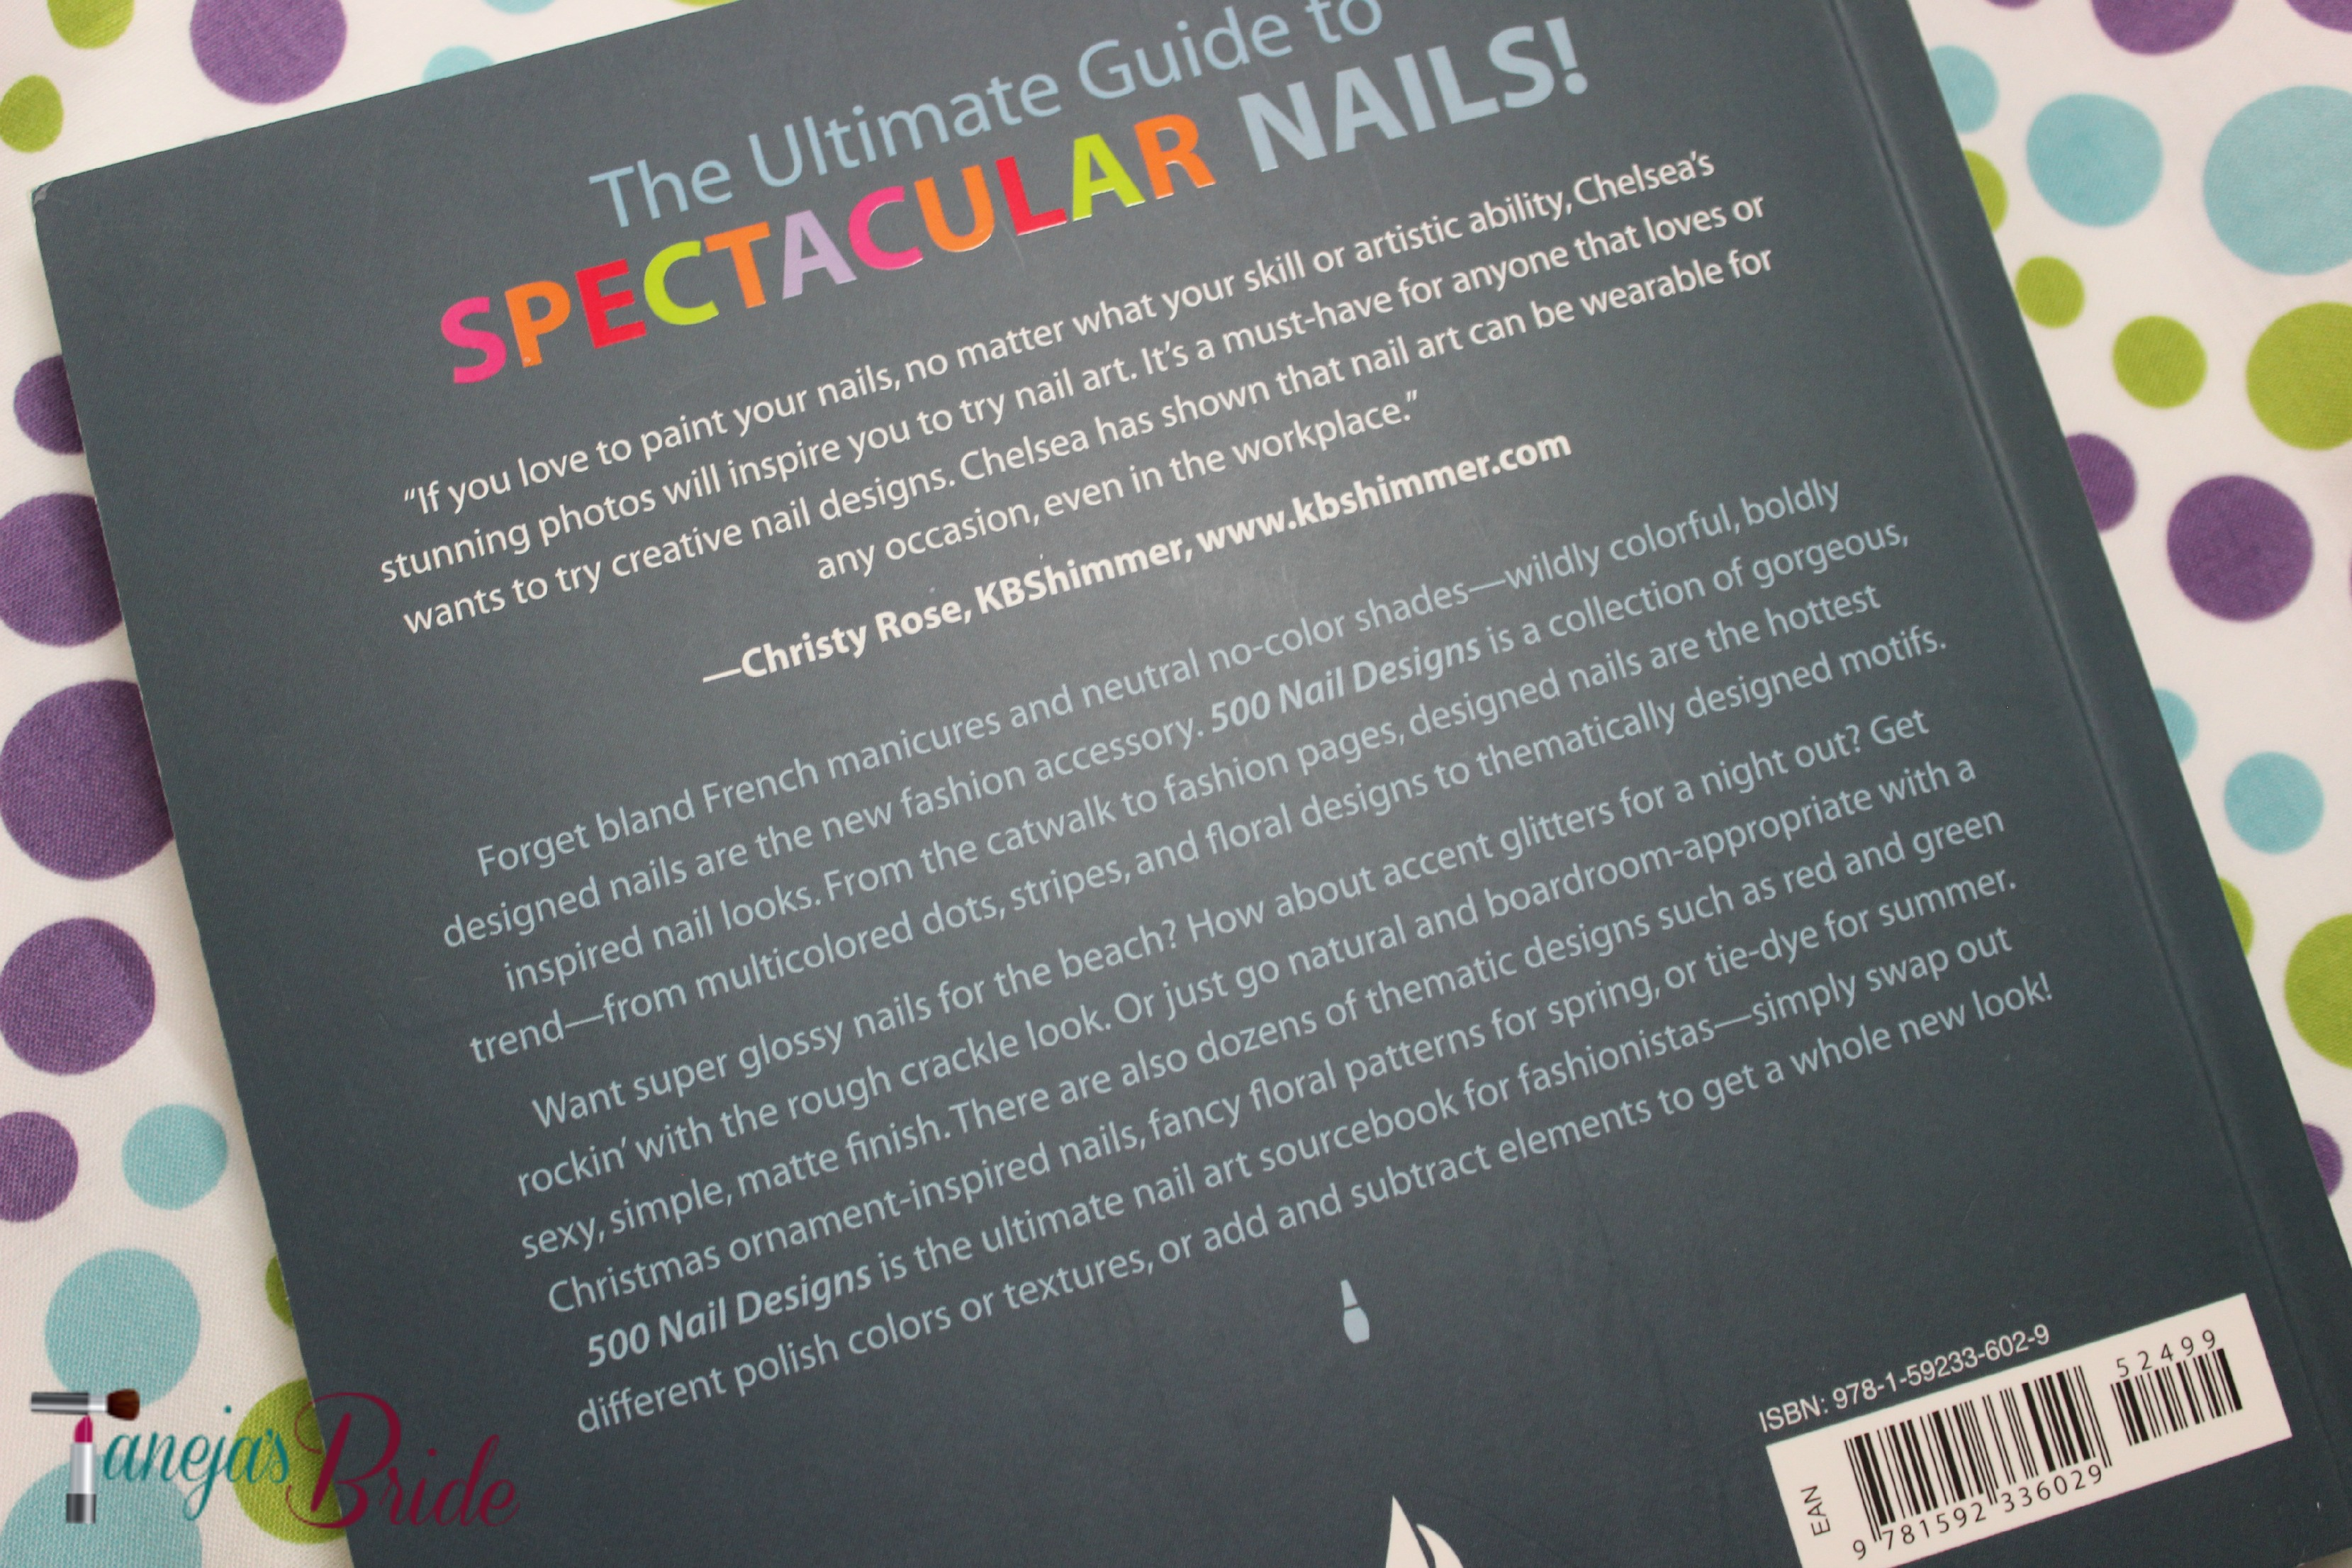 500 Nail Designs by Chelsea Franklin Book s Review